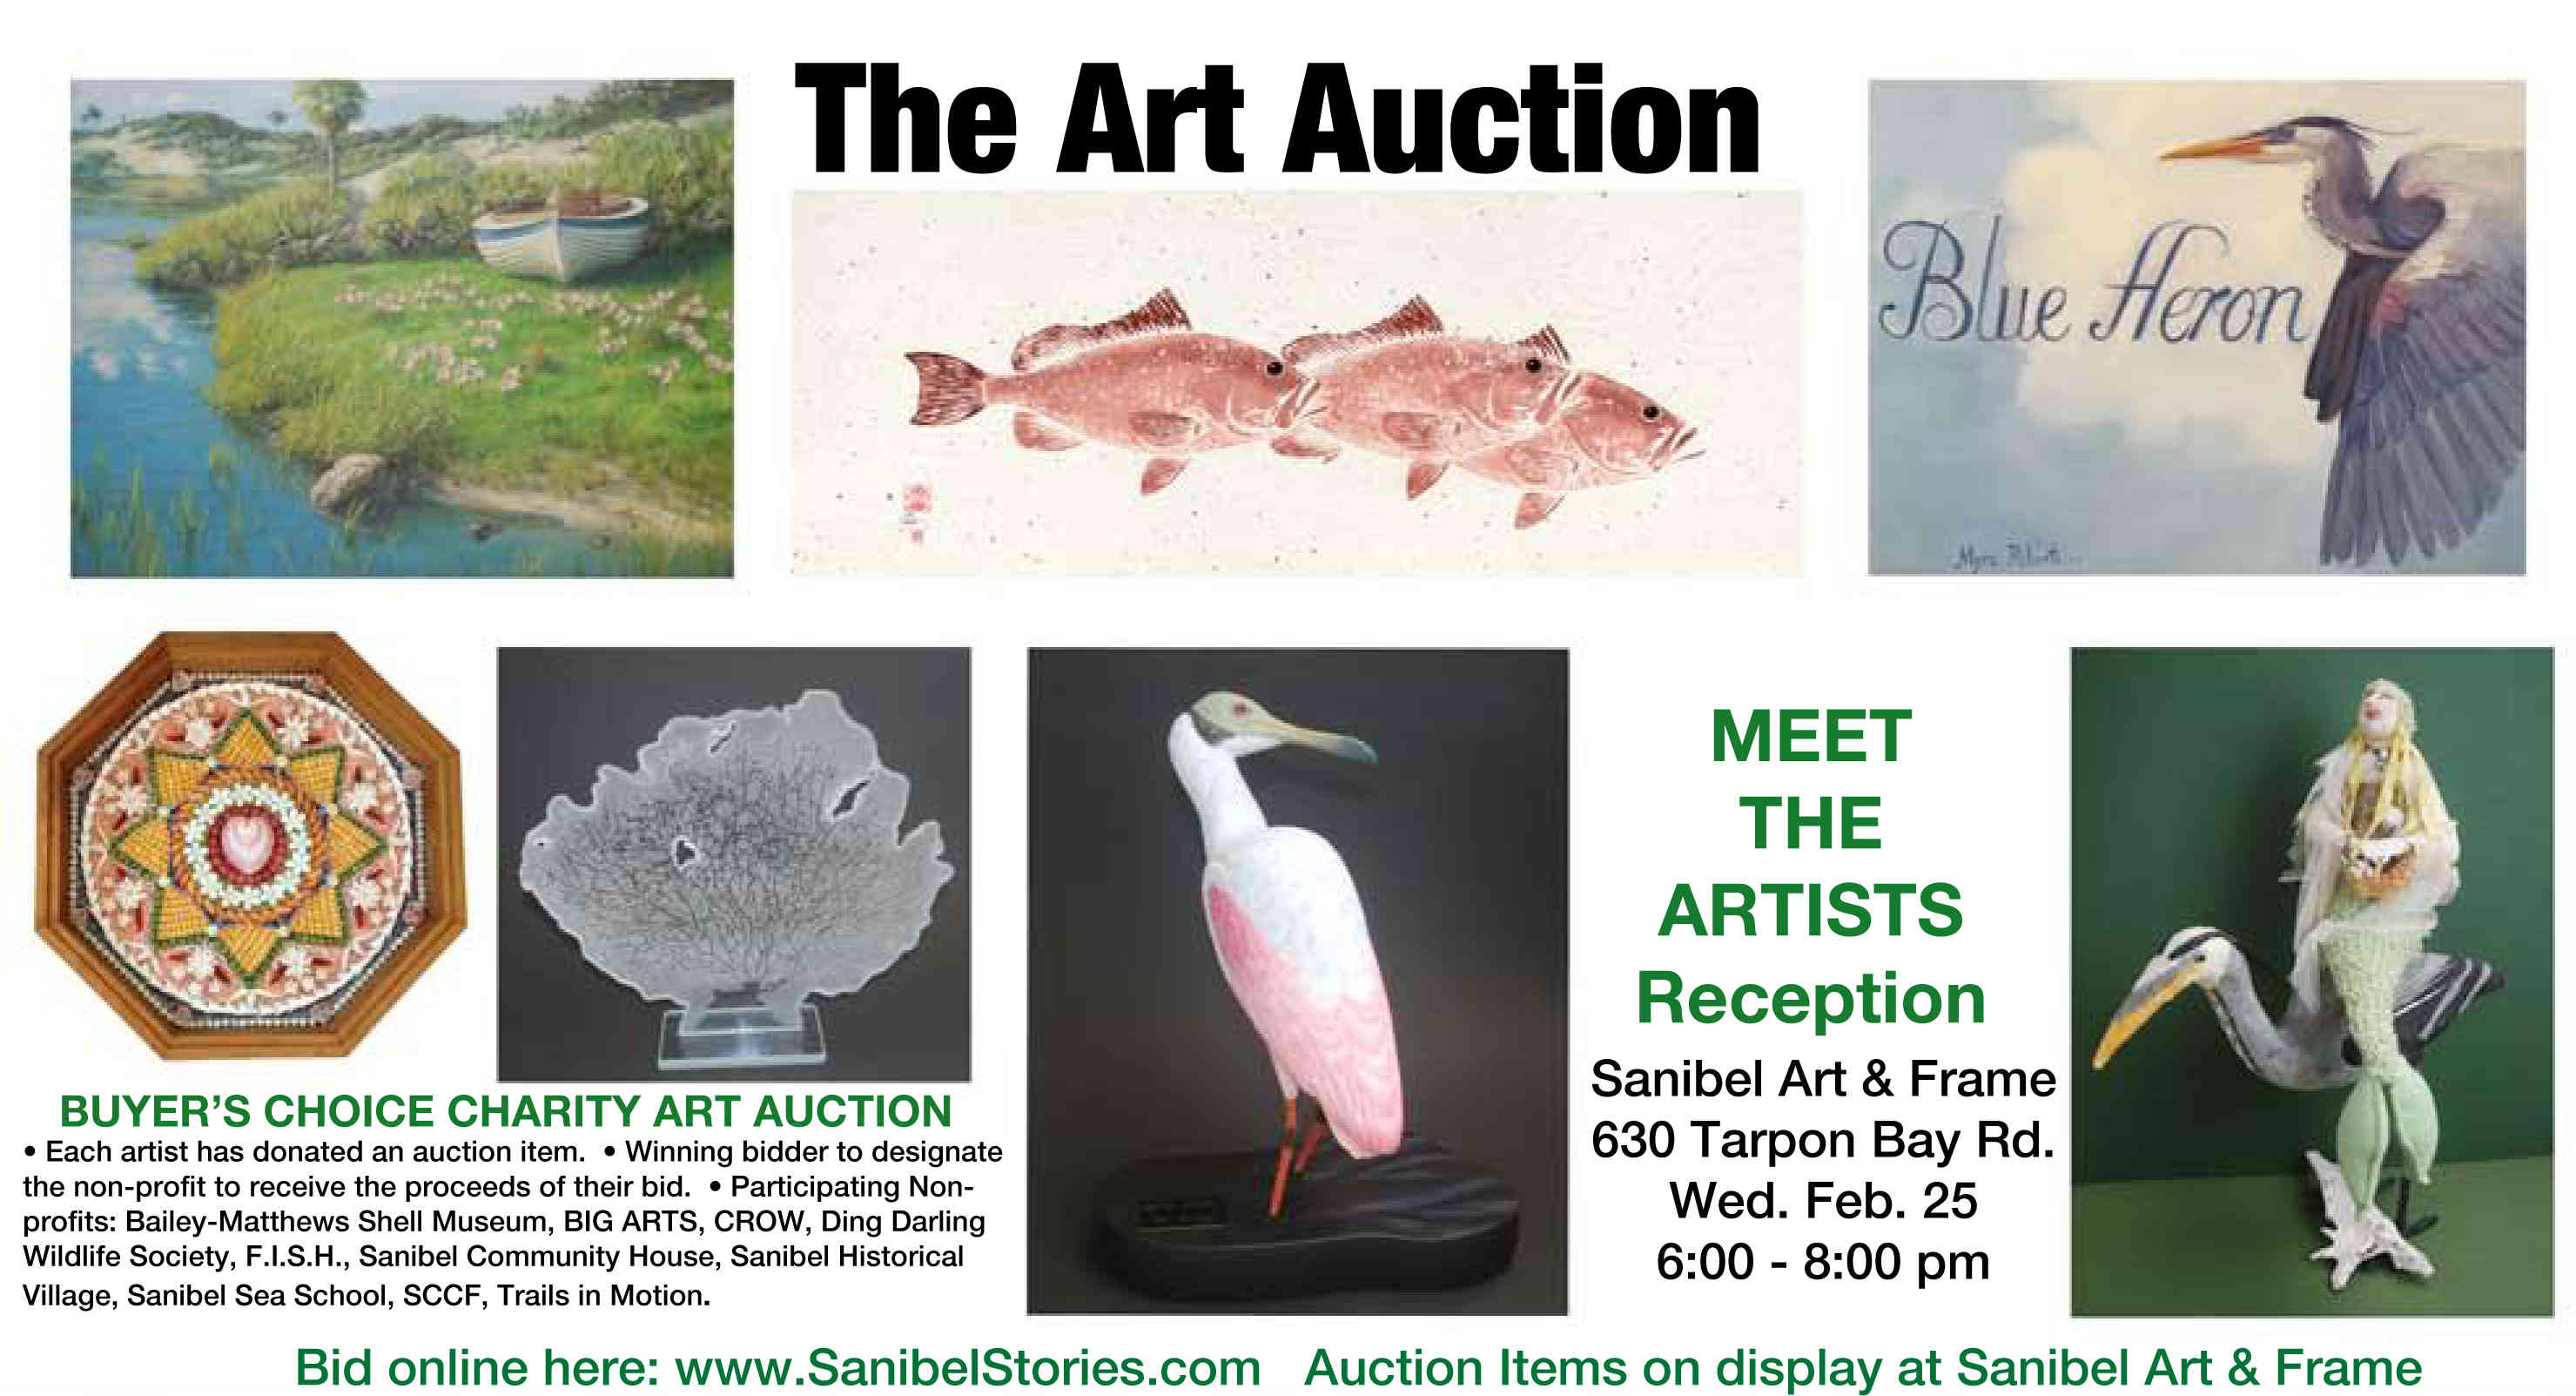 Pfeifer Art Auction to Benefit Island Non-Profits